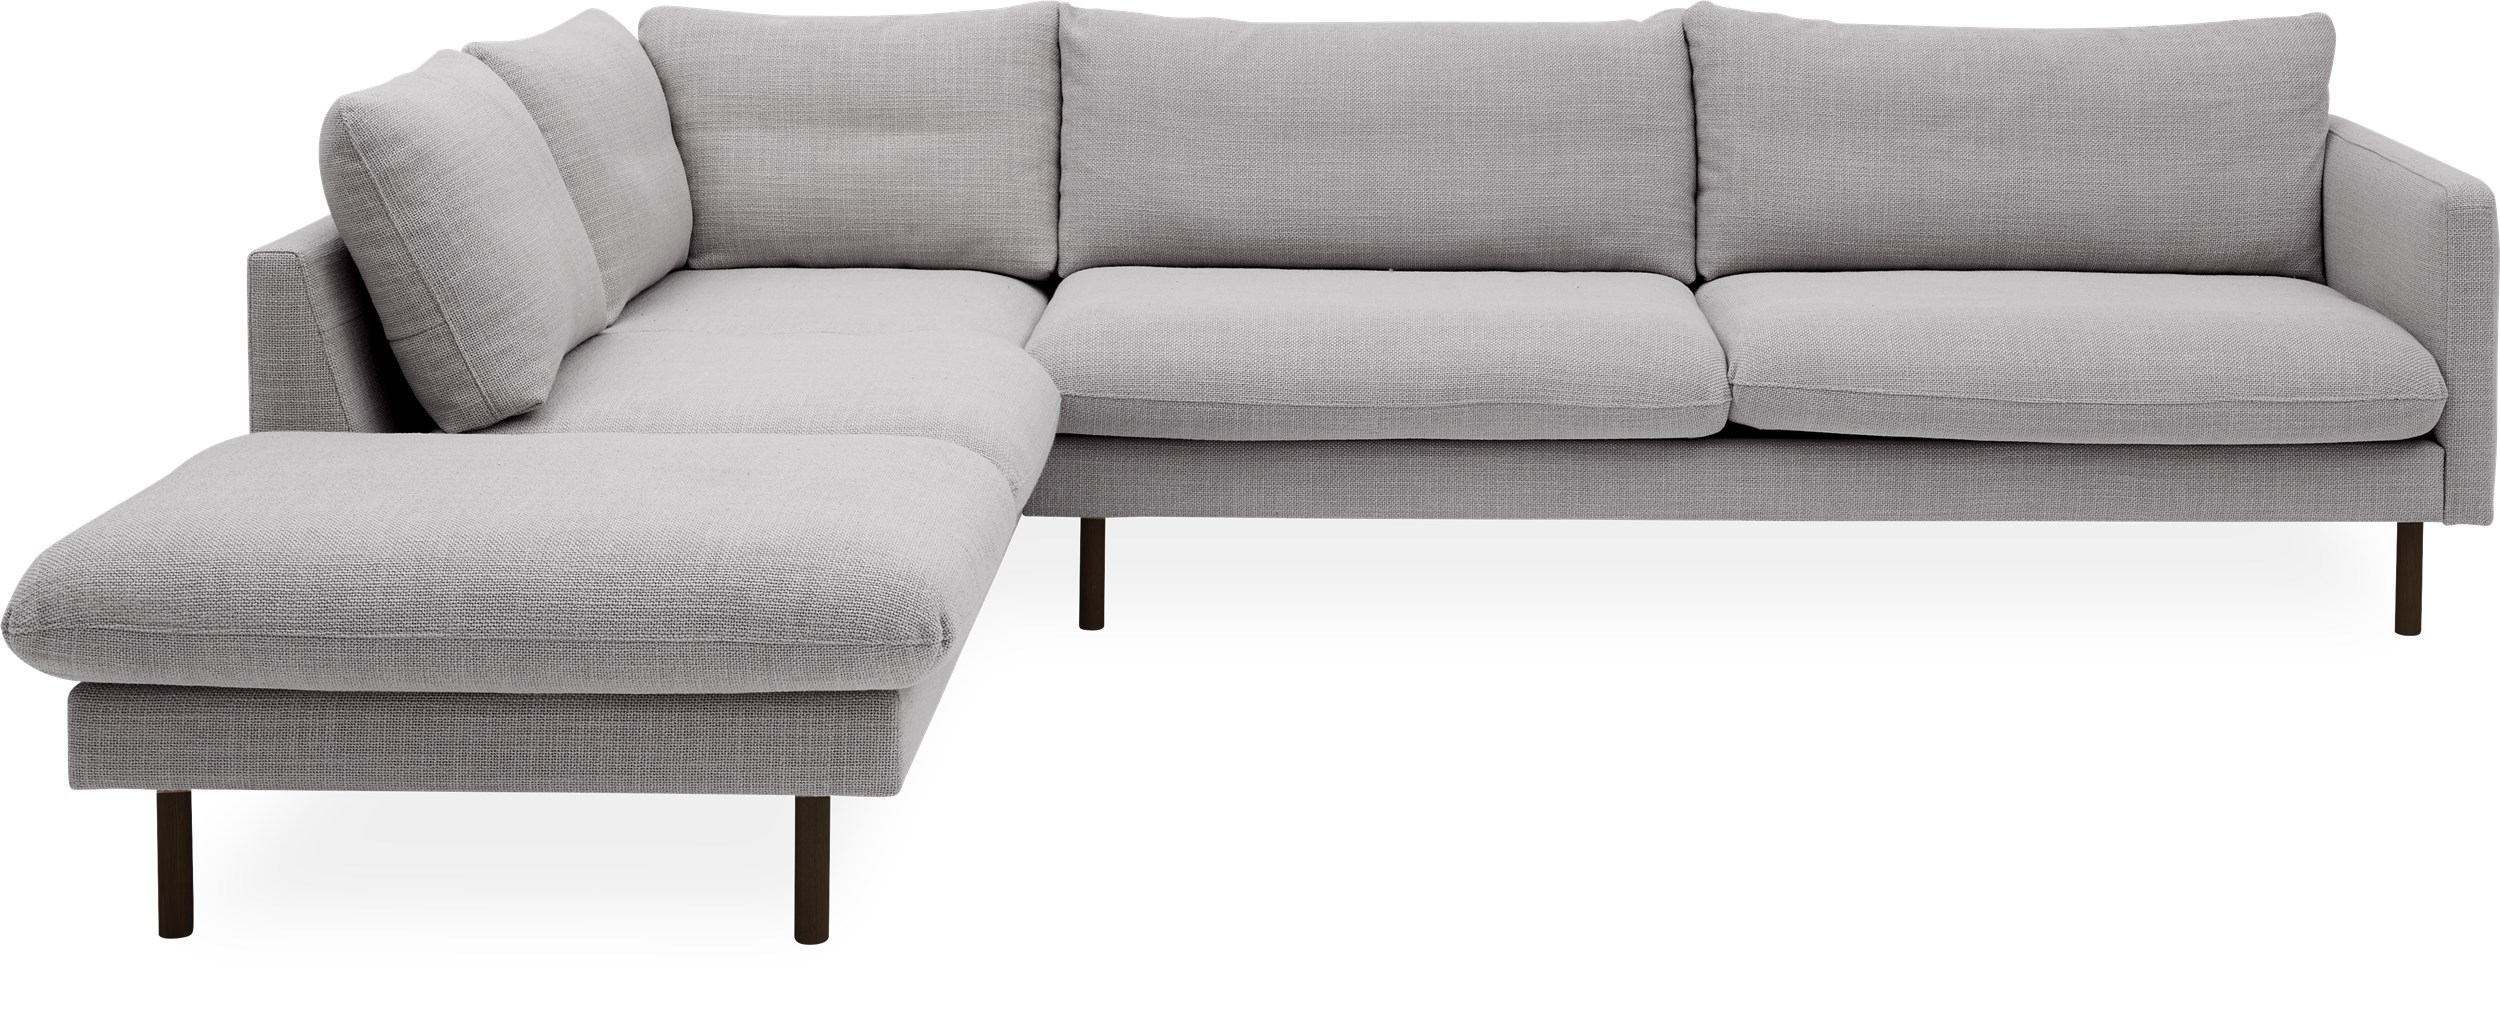 Bjorn Sofa med pufafslutning - Melina 1240 Grey breeze stof og ben i sort metal